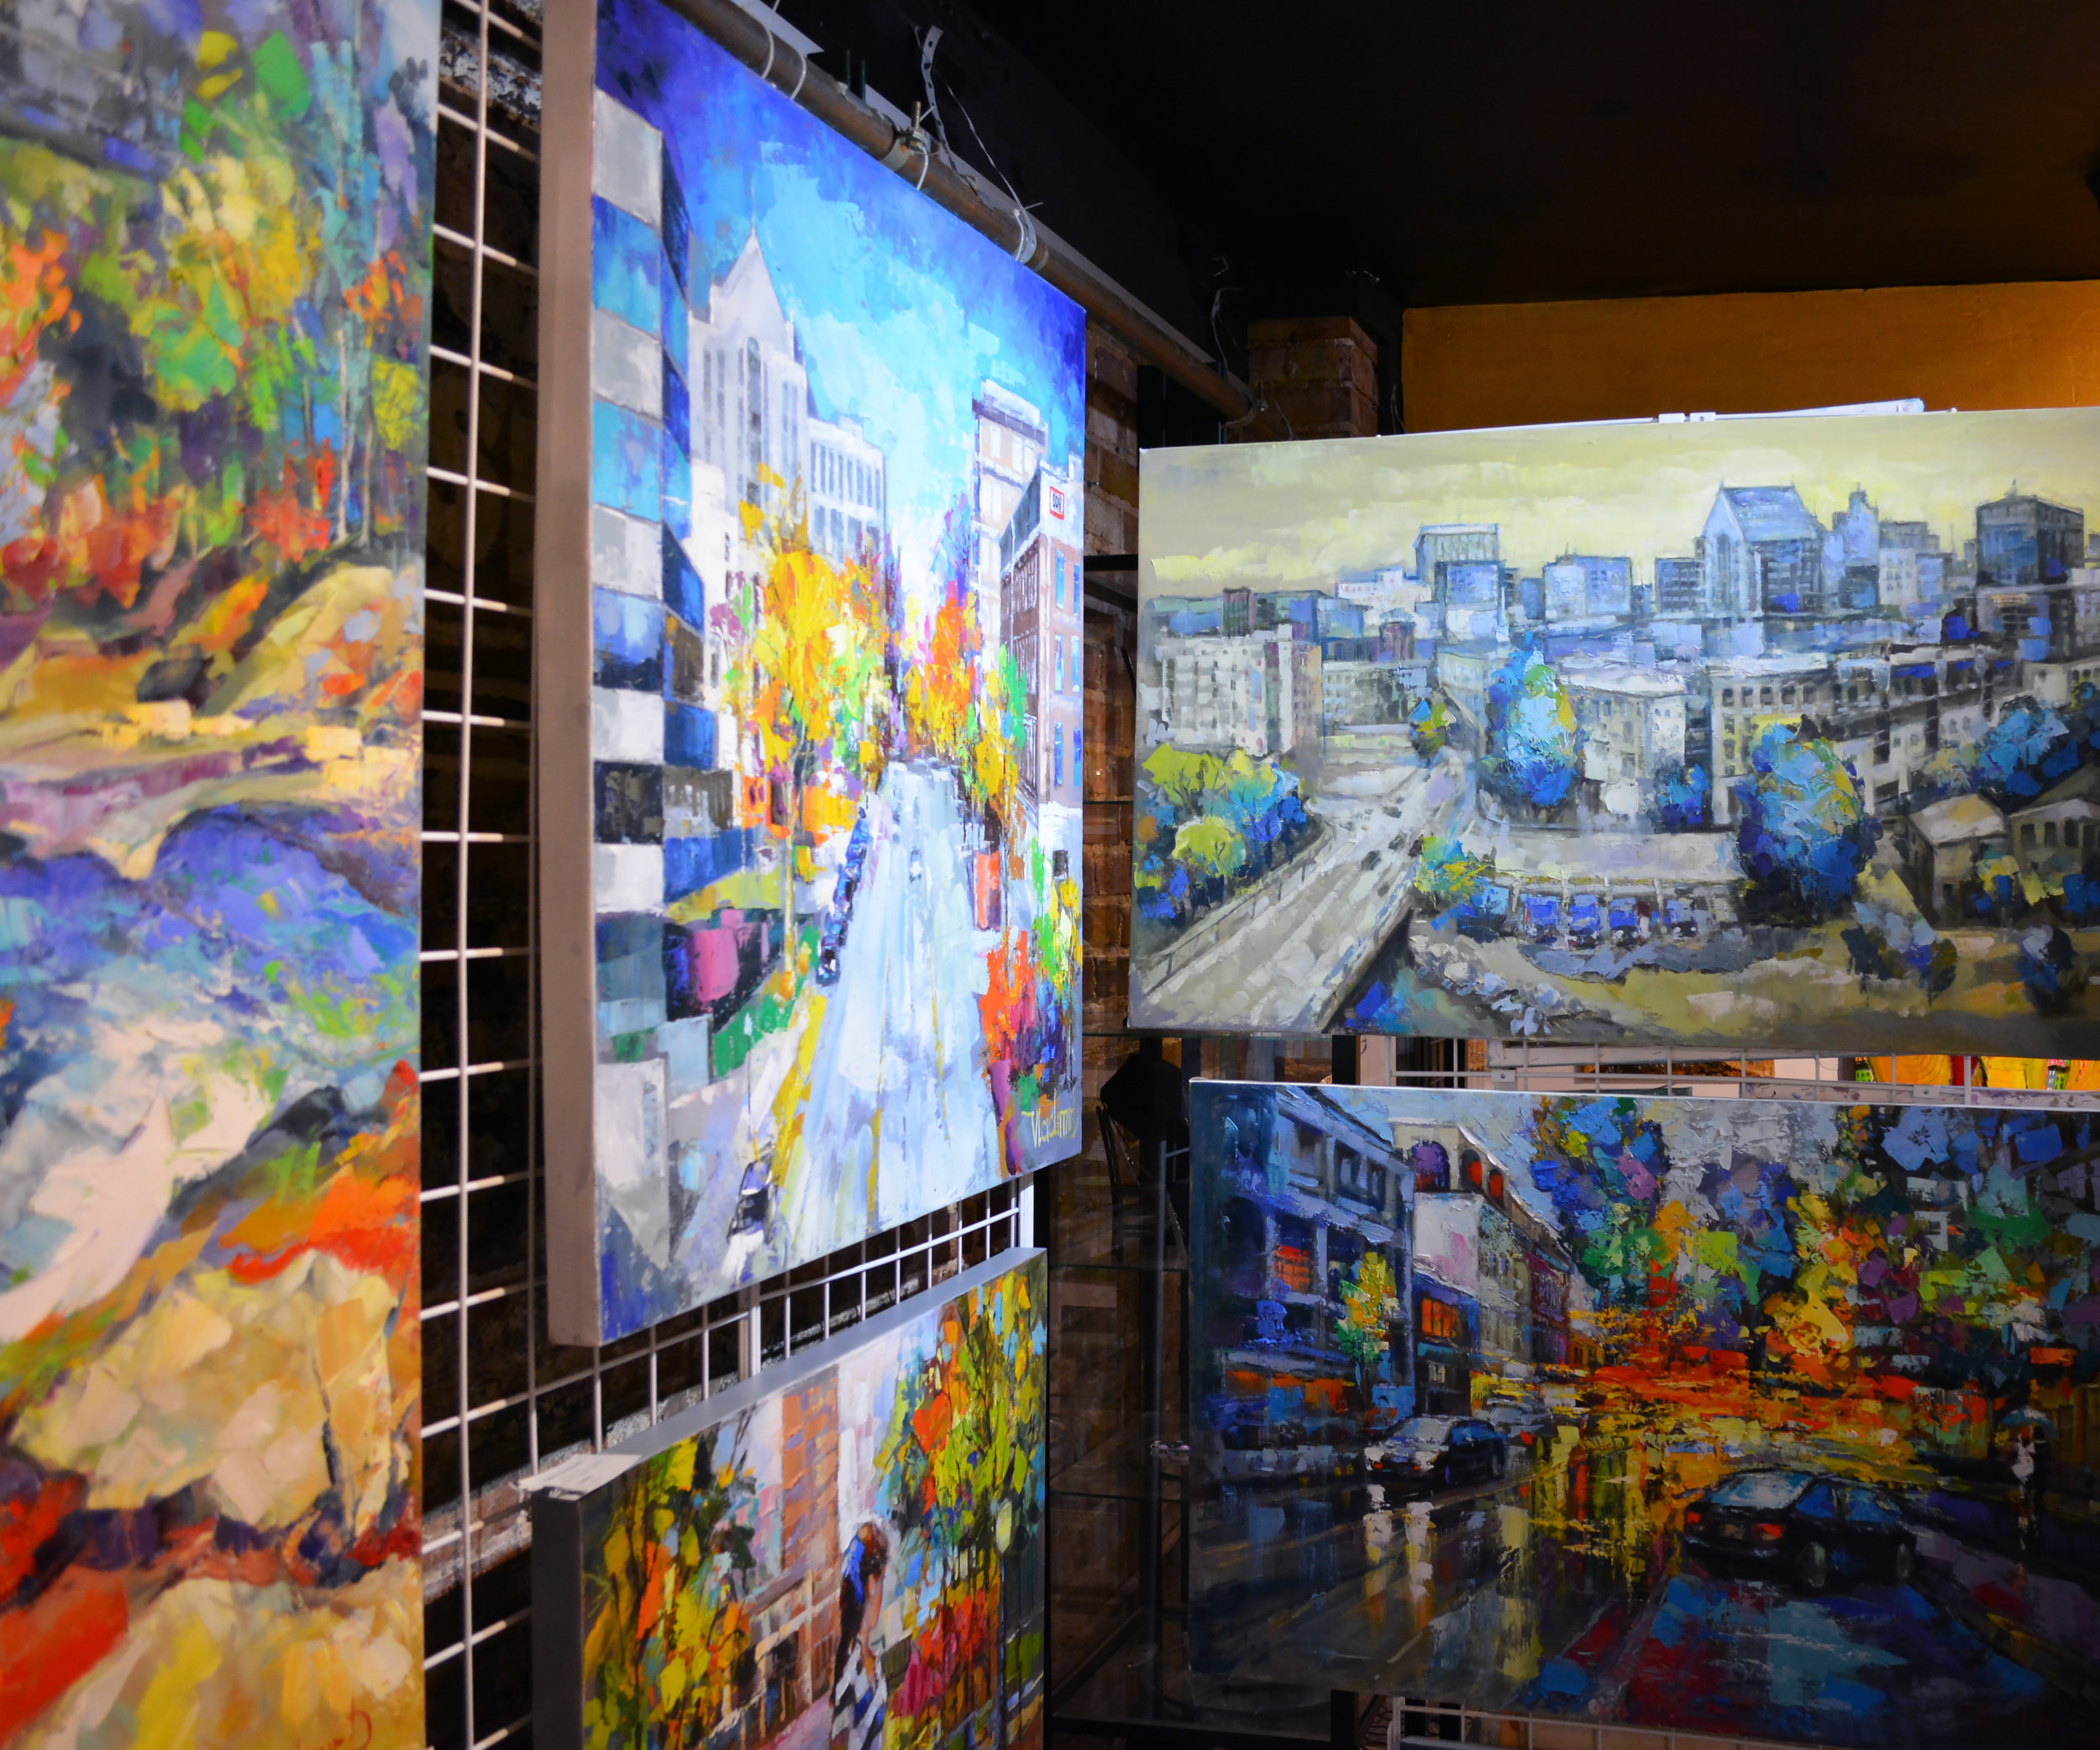 Vladimir Demidovich - Impressionistic pallet knife paintings capturing the beautiful downtown Greenville scenes. On canvas.